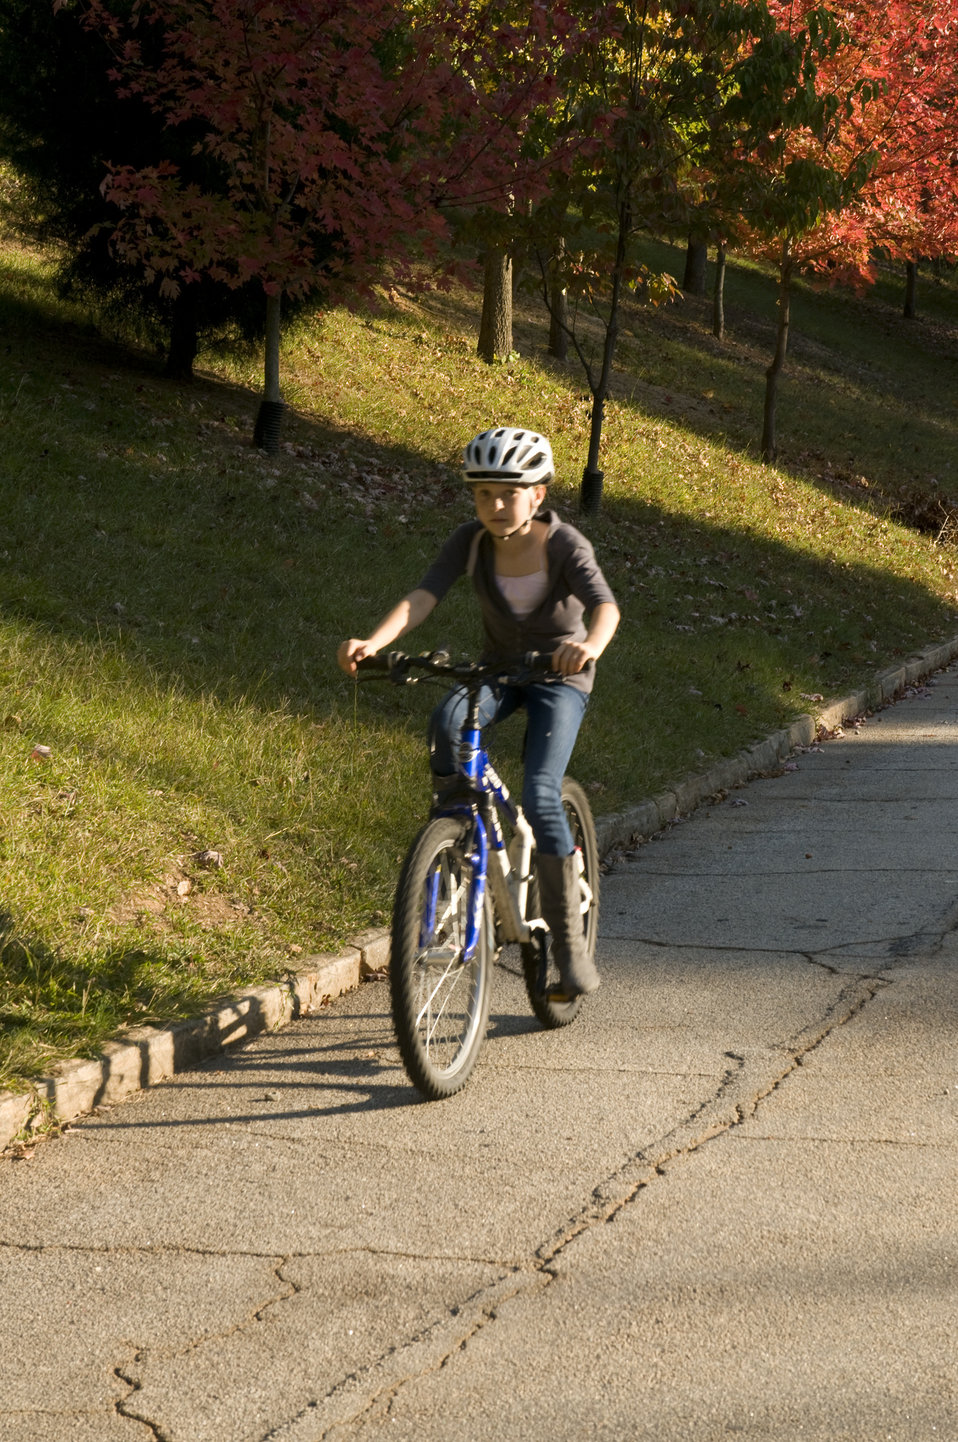 This image depicts a young girl who was riding her bicycle on a bright Georgian afternoon. She's been equipped with an aerodynamic safety he